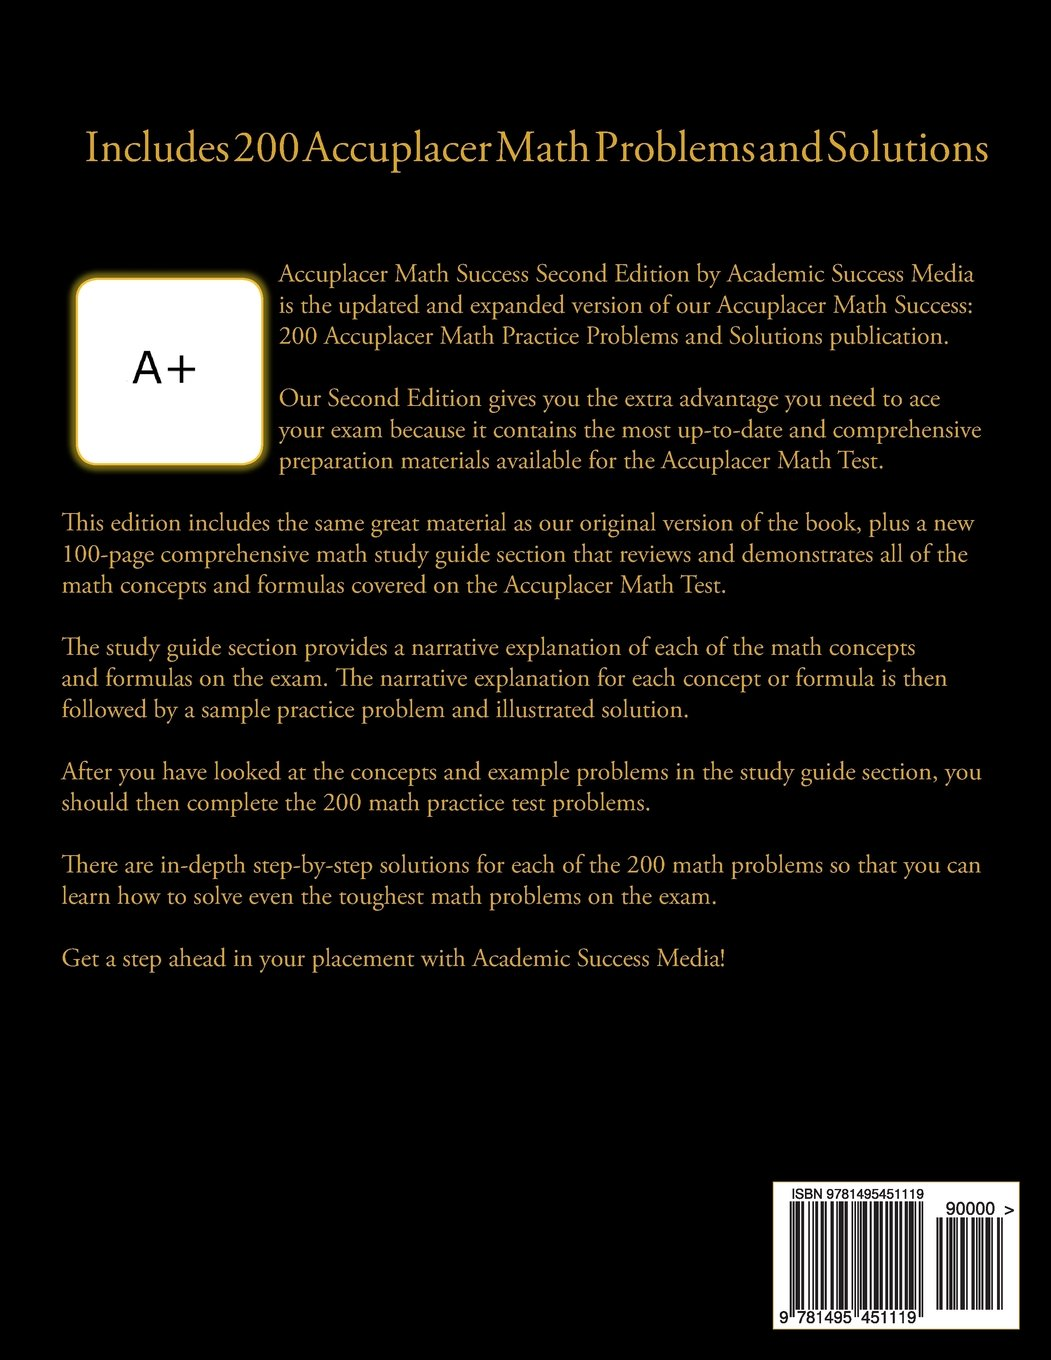 Accuplacer Math Success - Second Edition with Math Concept and ...